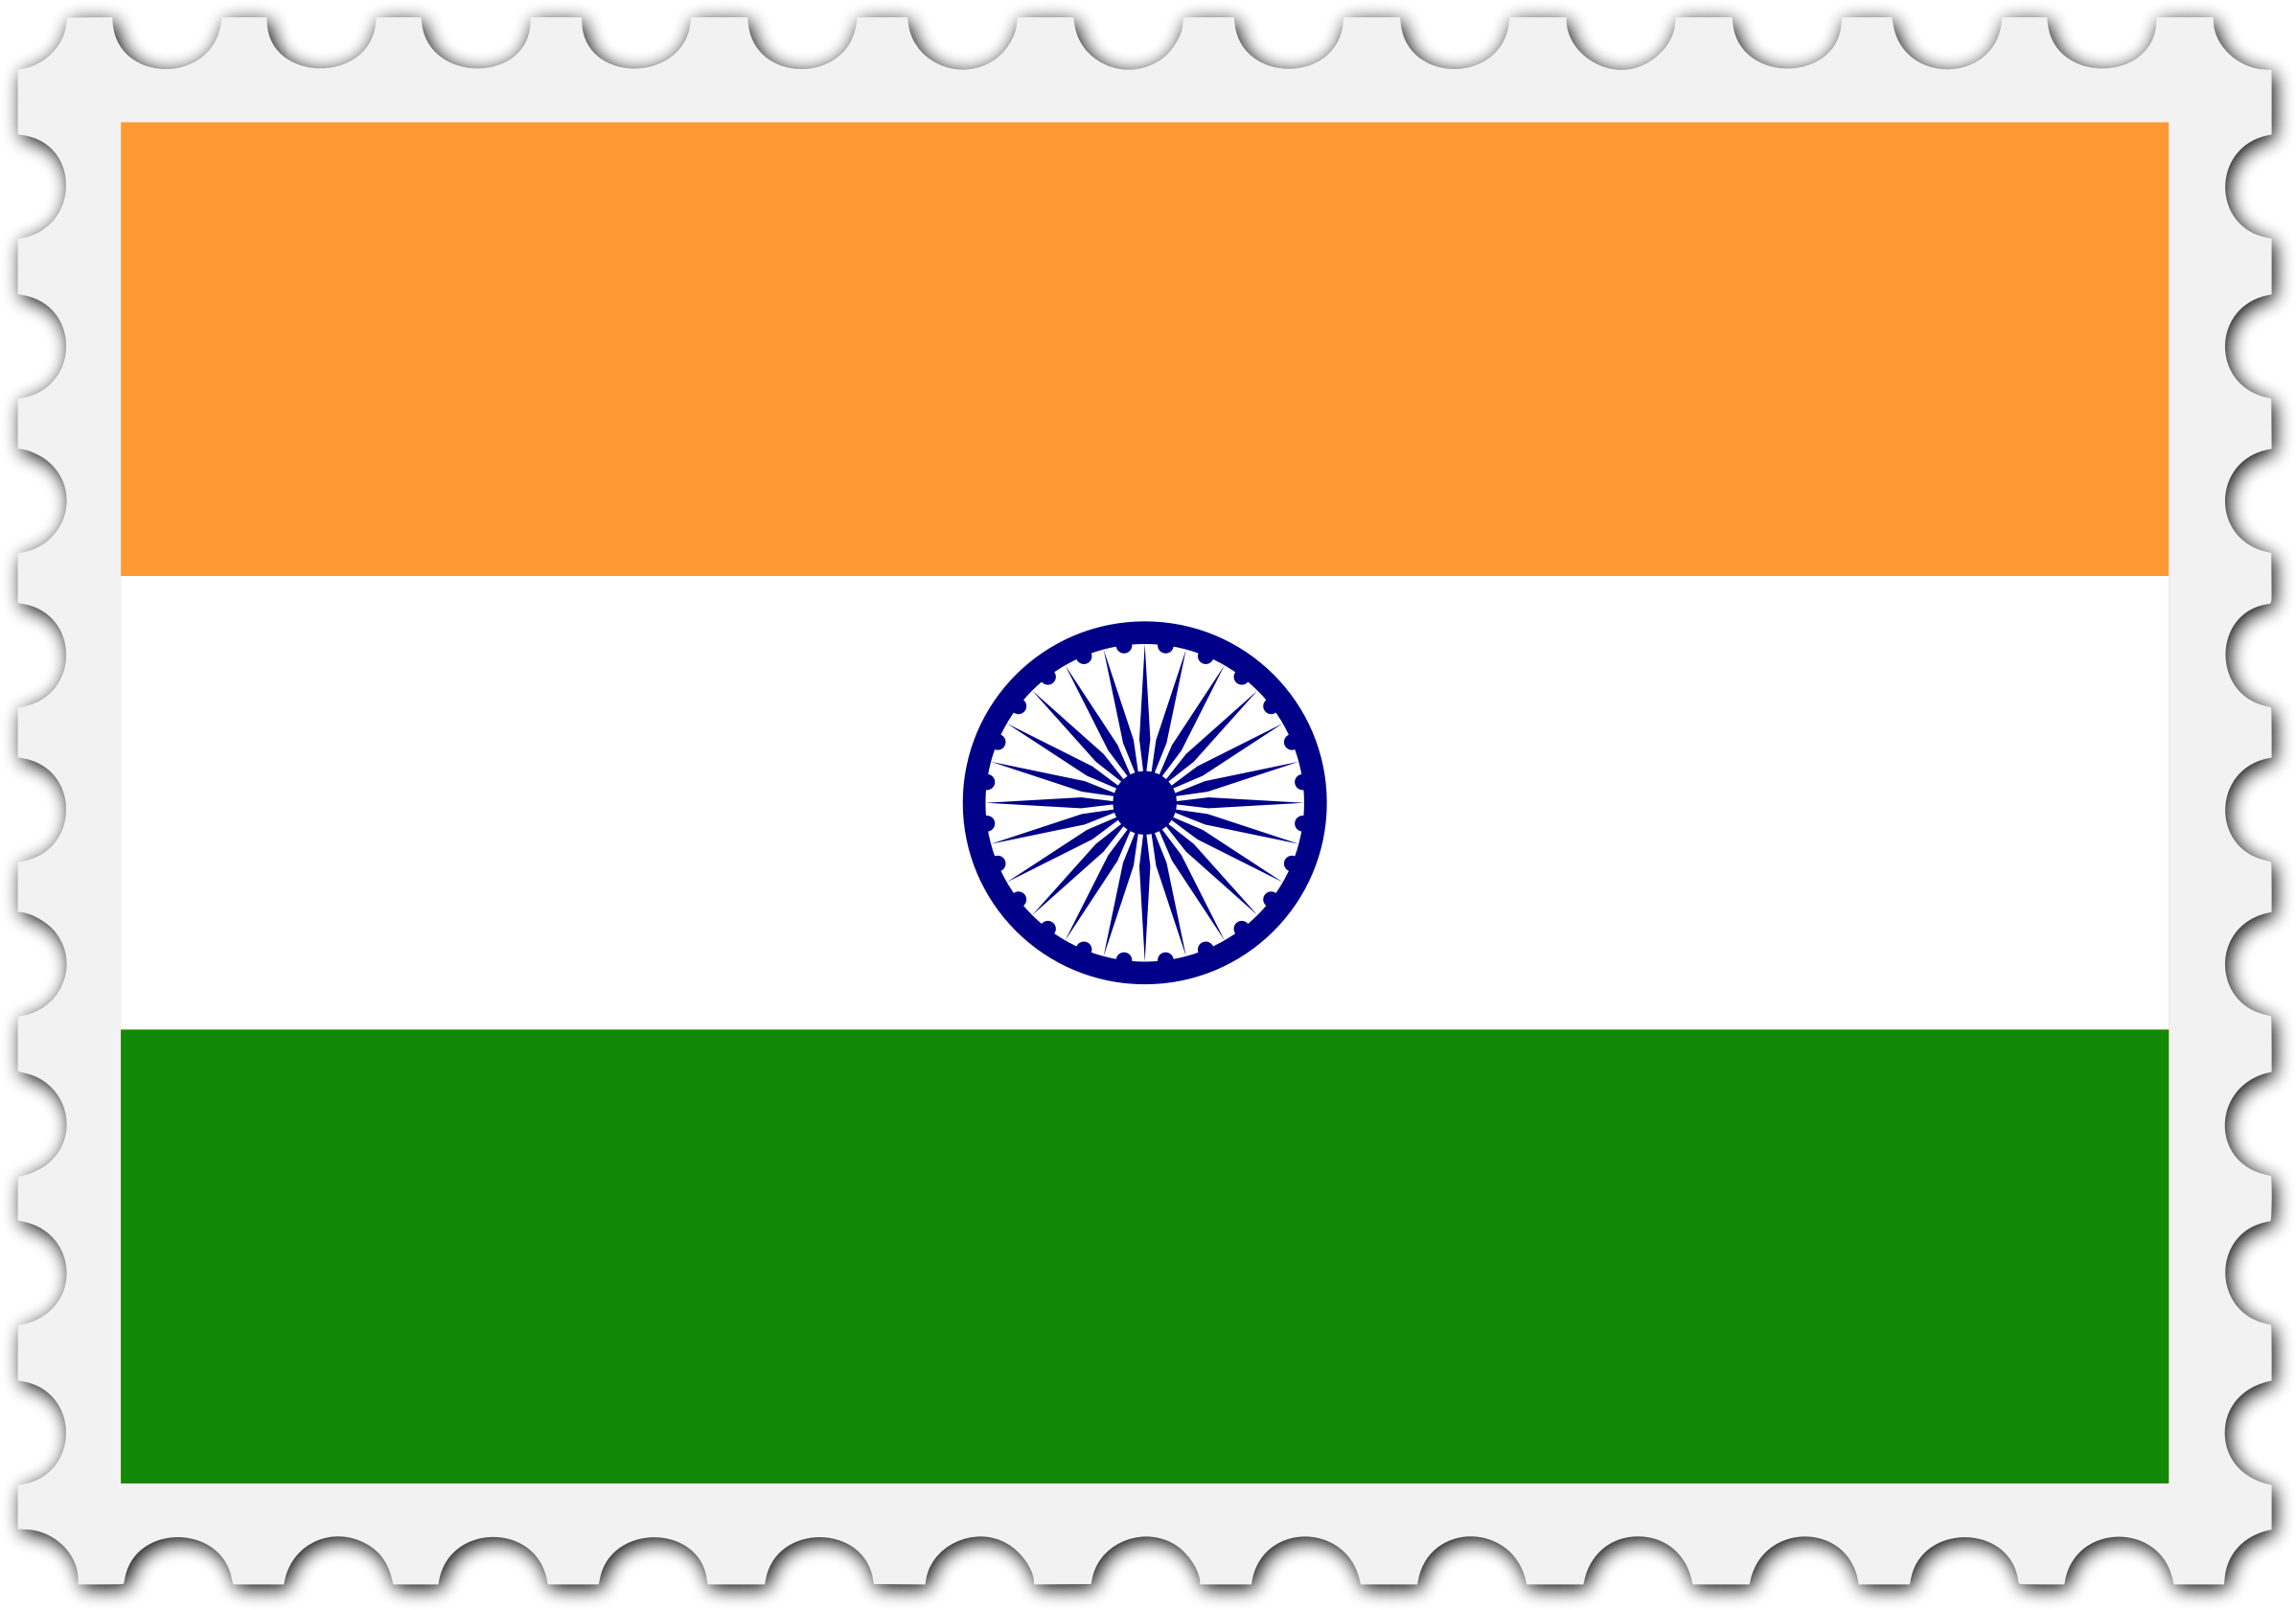 India flag stamp by Firkin